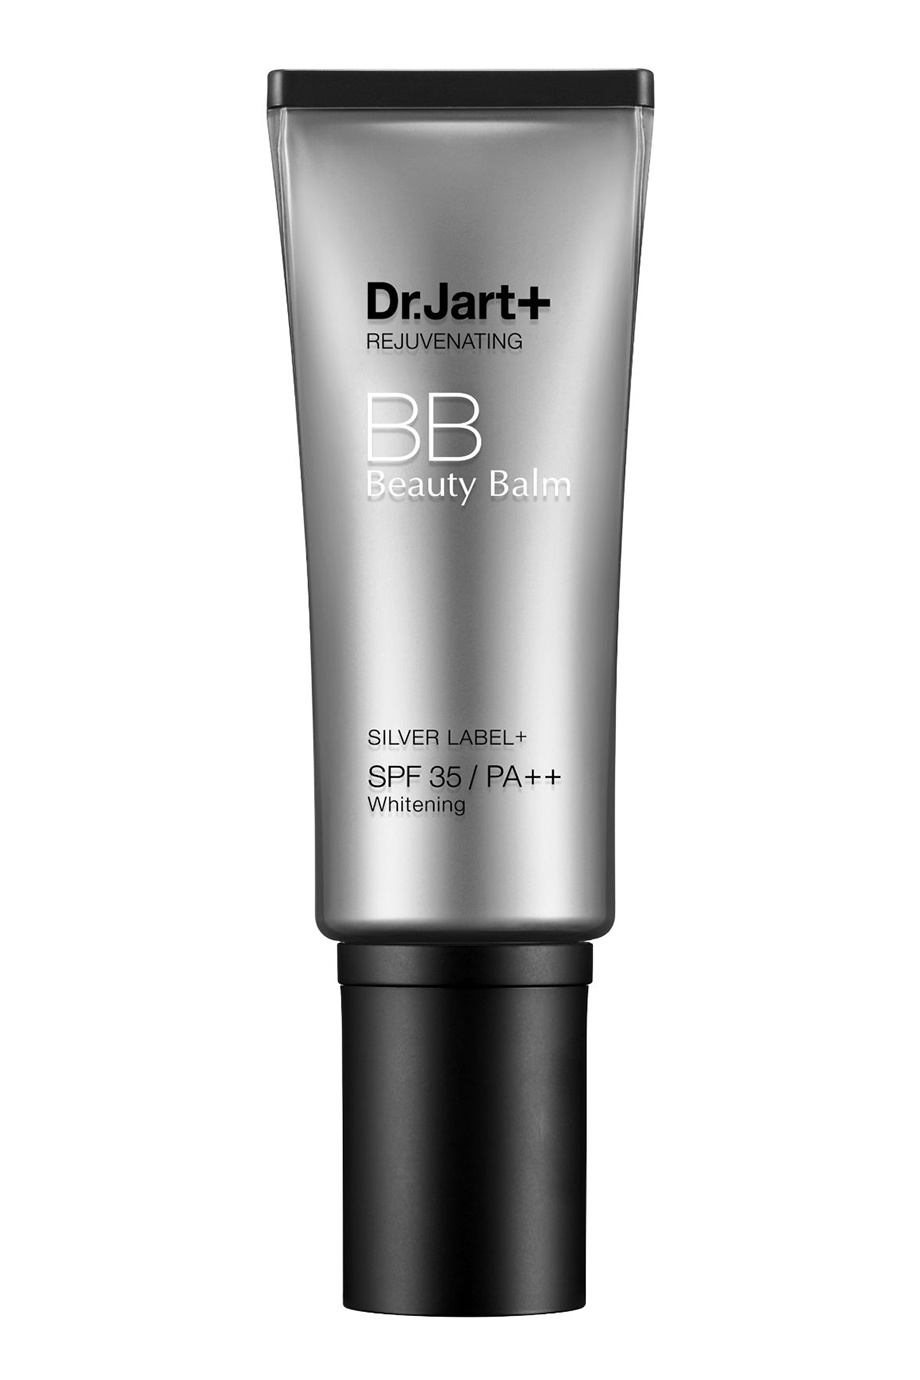 BB крем омолаживающий Rejuvenating Silver label с SPF35, 40 ml Dr.Jart+ (фото)